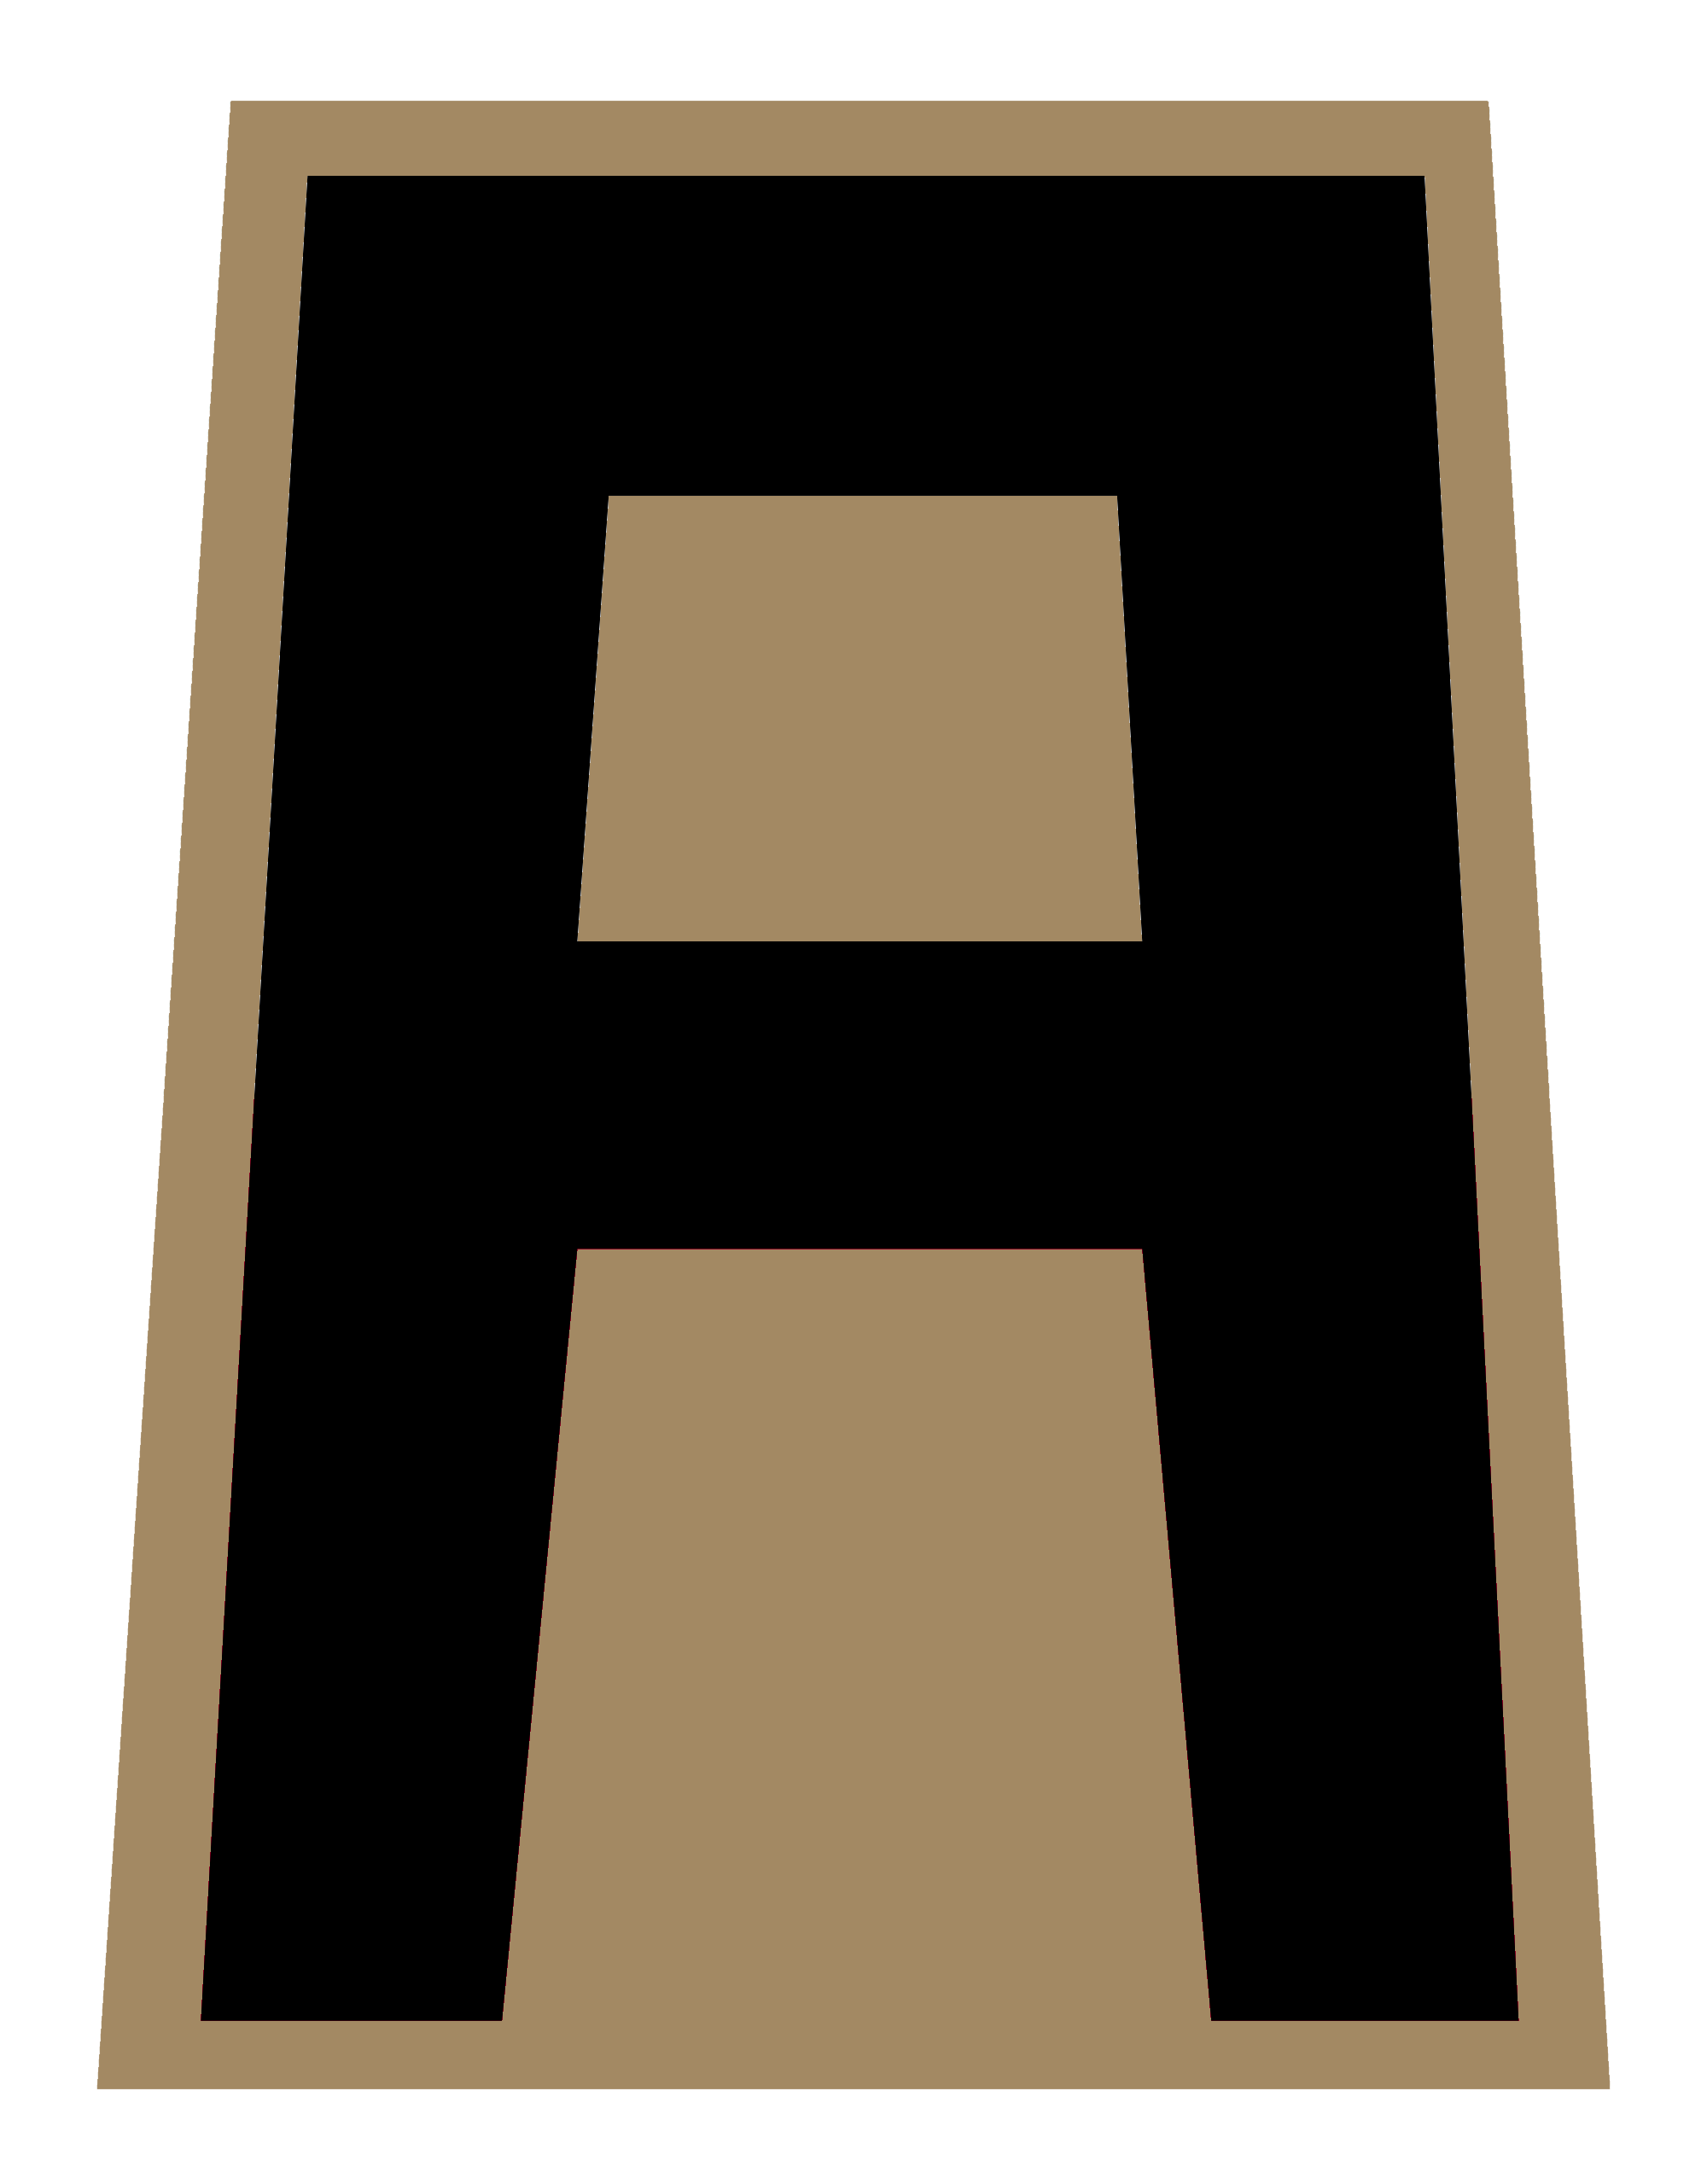 US Army 1st Army SSI Prior to 1950.png